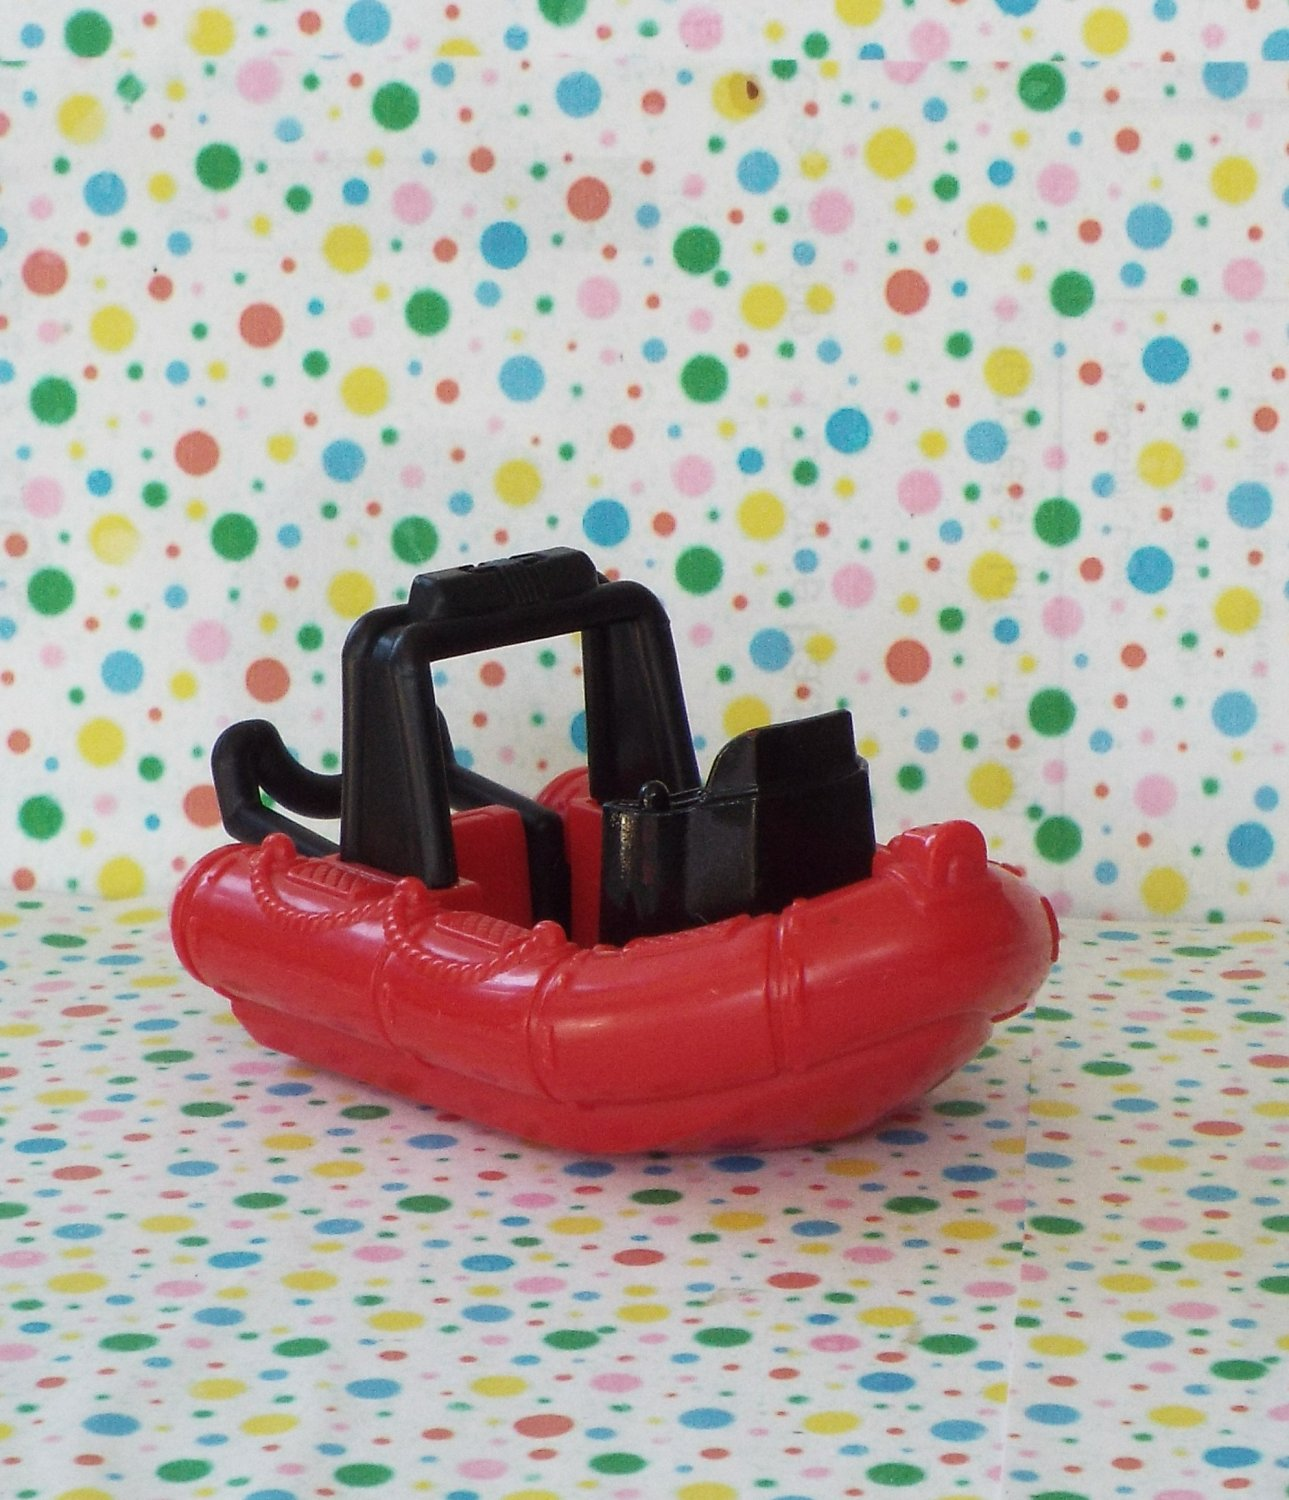 Fisher Price Rescue Heroes Micro A.R.C.C Lifeboat Part